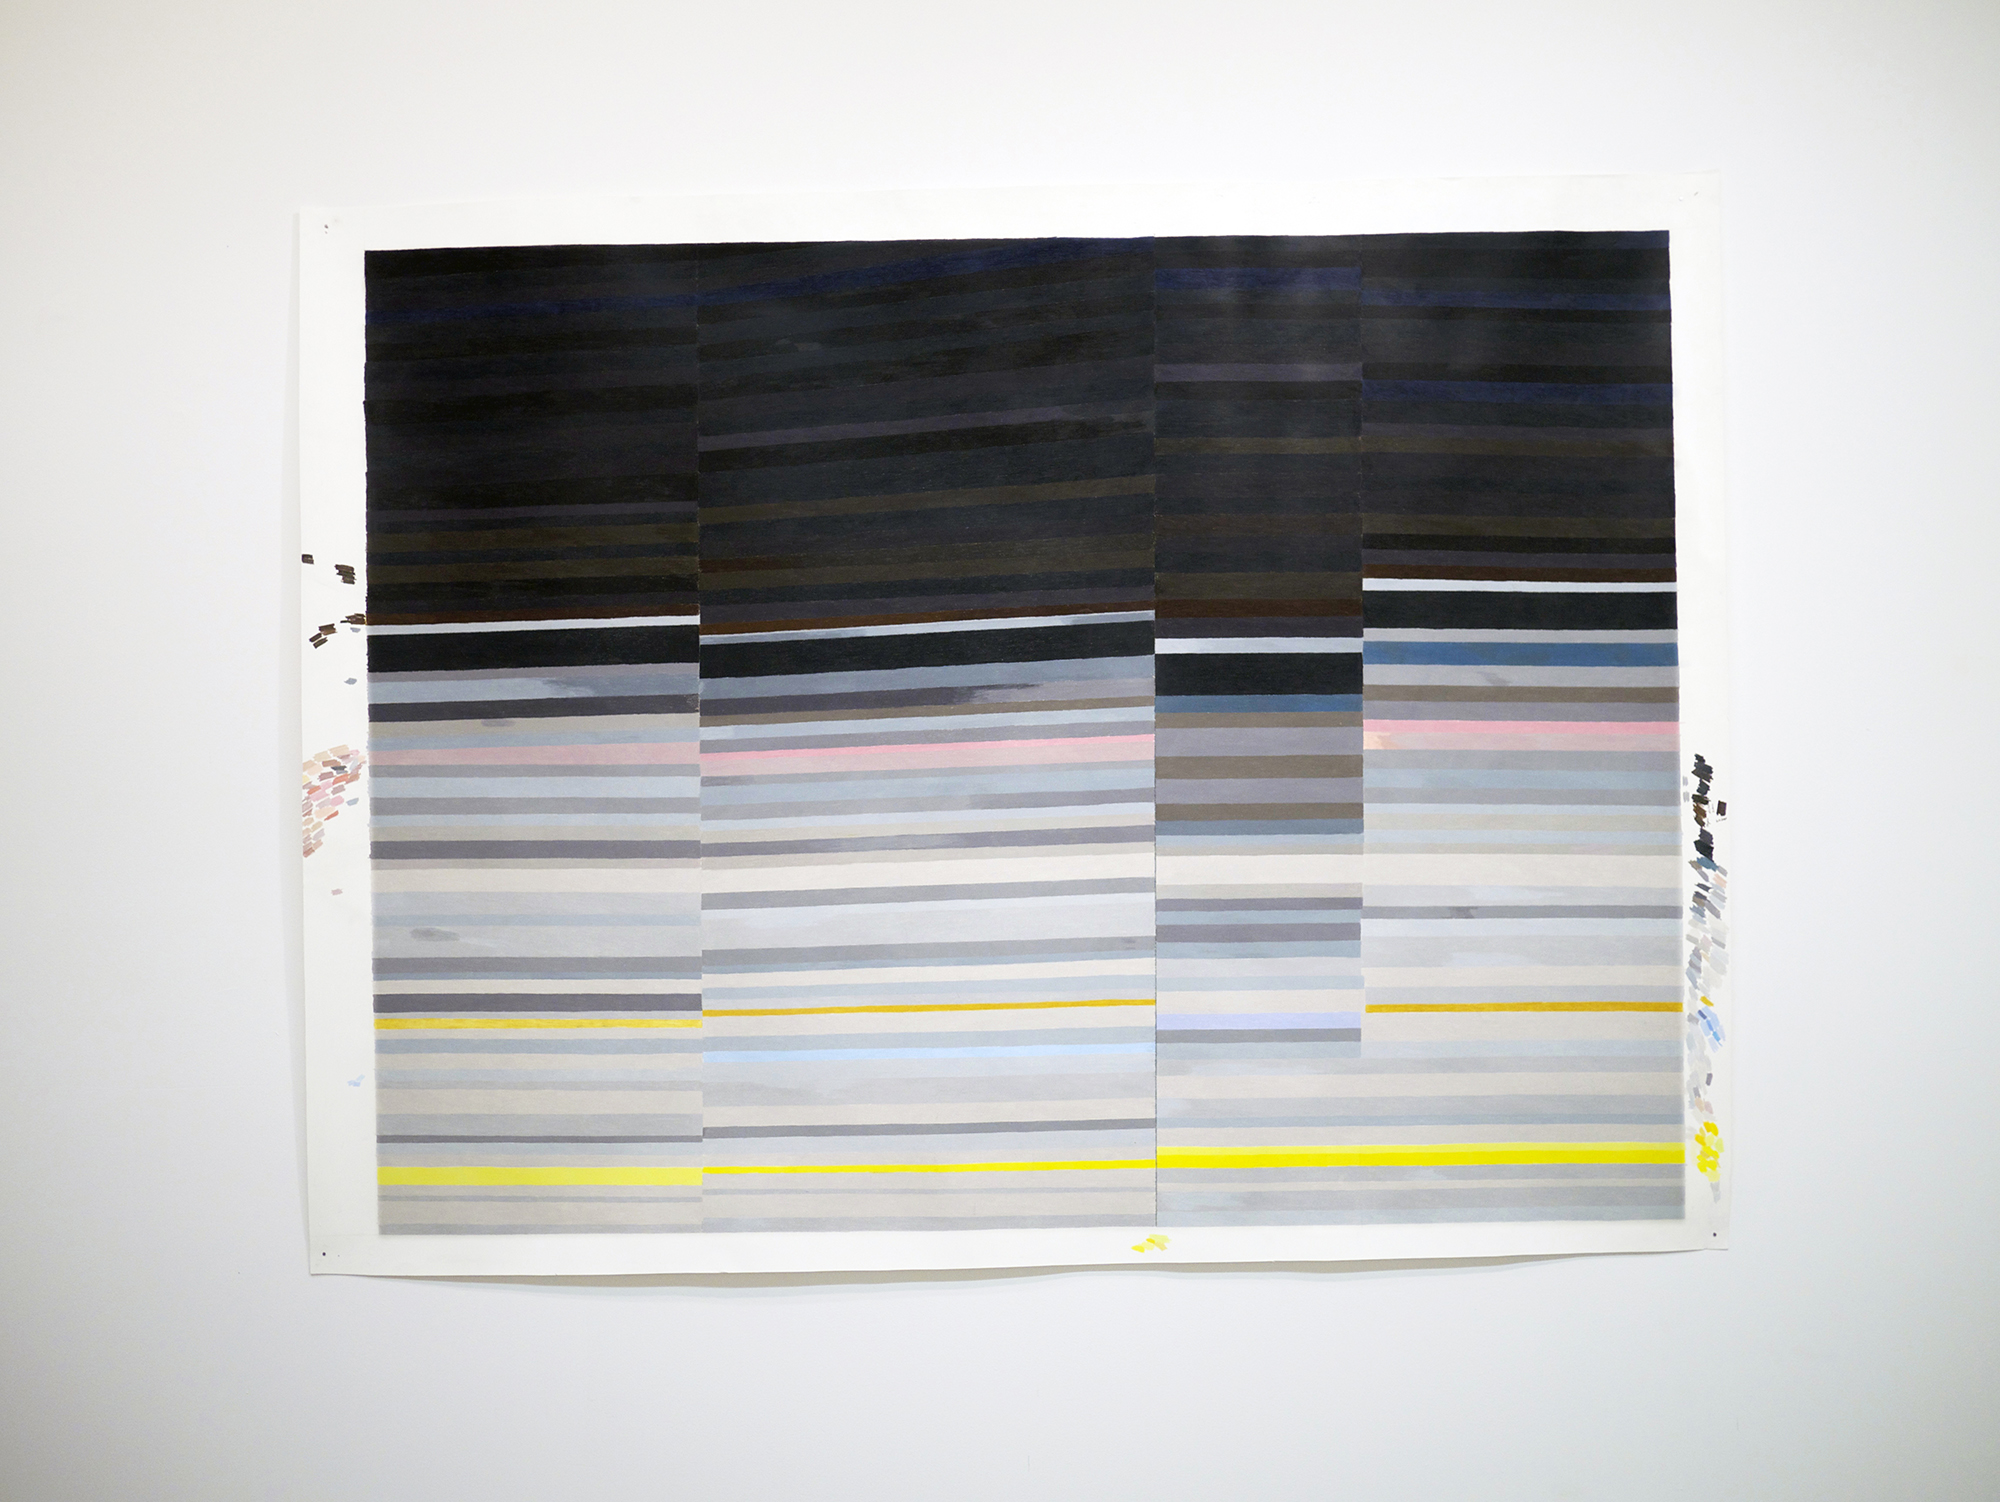 Carrie Gundersdorf  Four Section of Saturn's Rings.  Colored pencil and watercolor paper  46 inches x 60 inches  2013